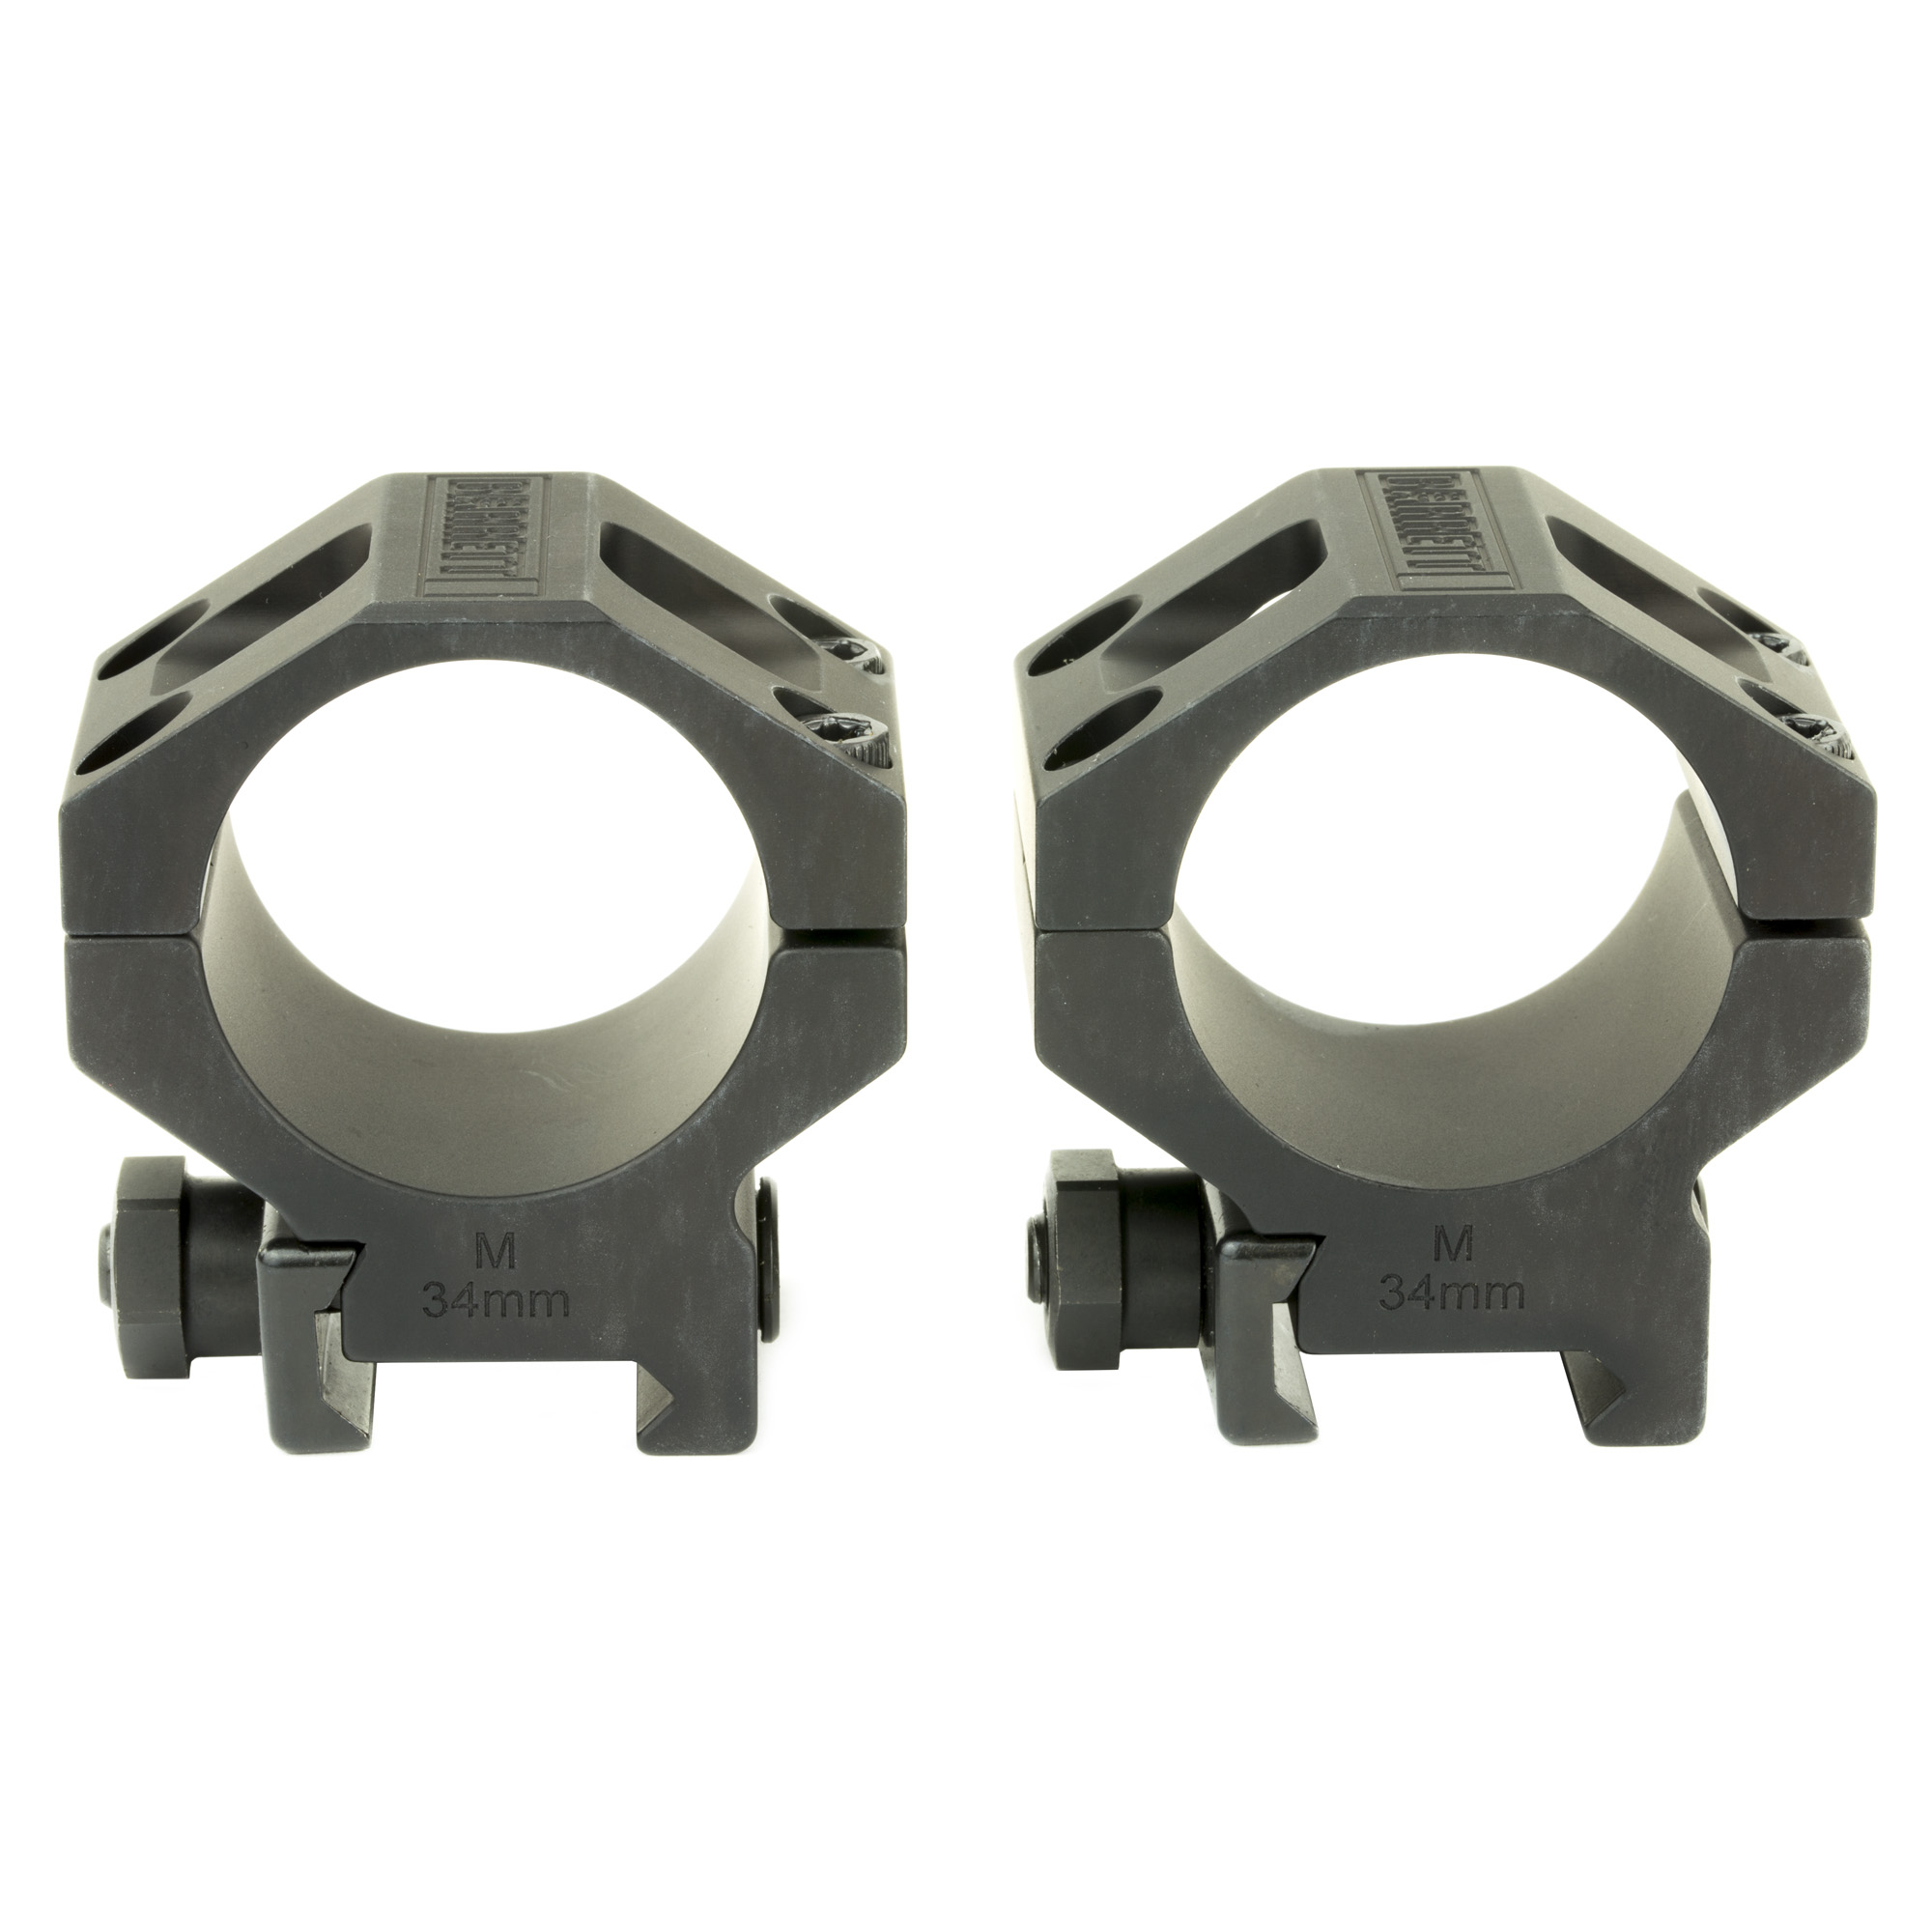 Barrett Rings Med 34mm